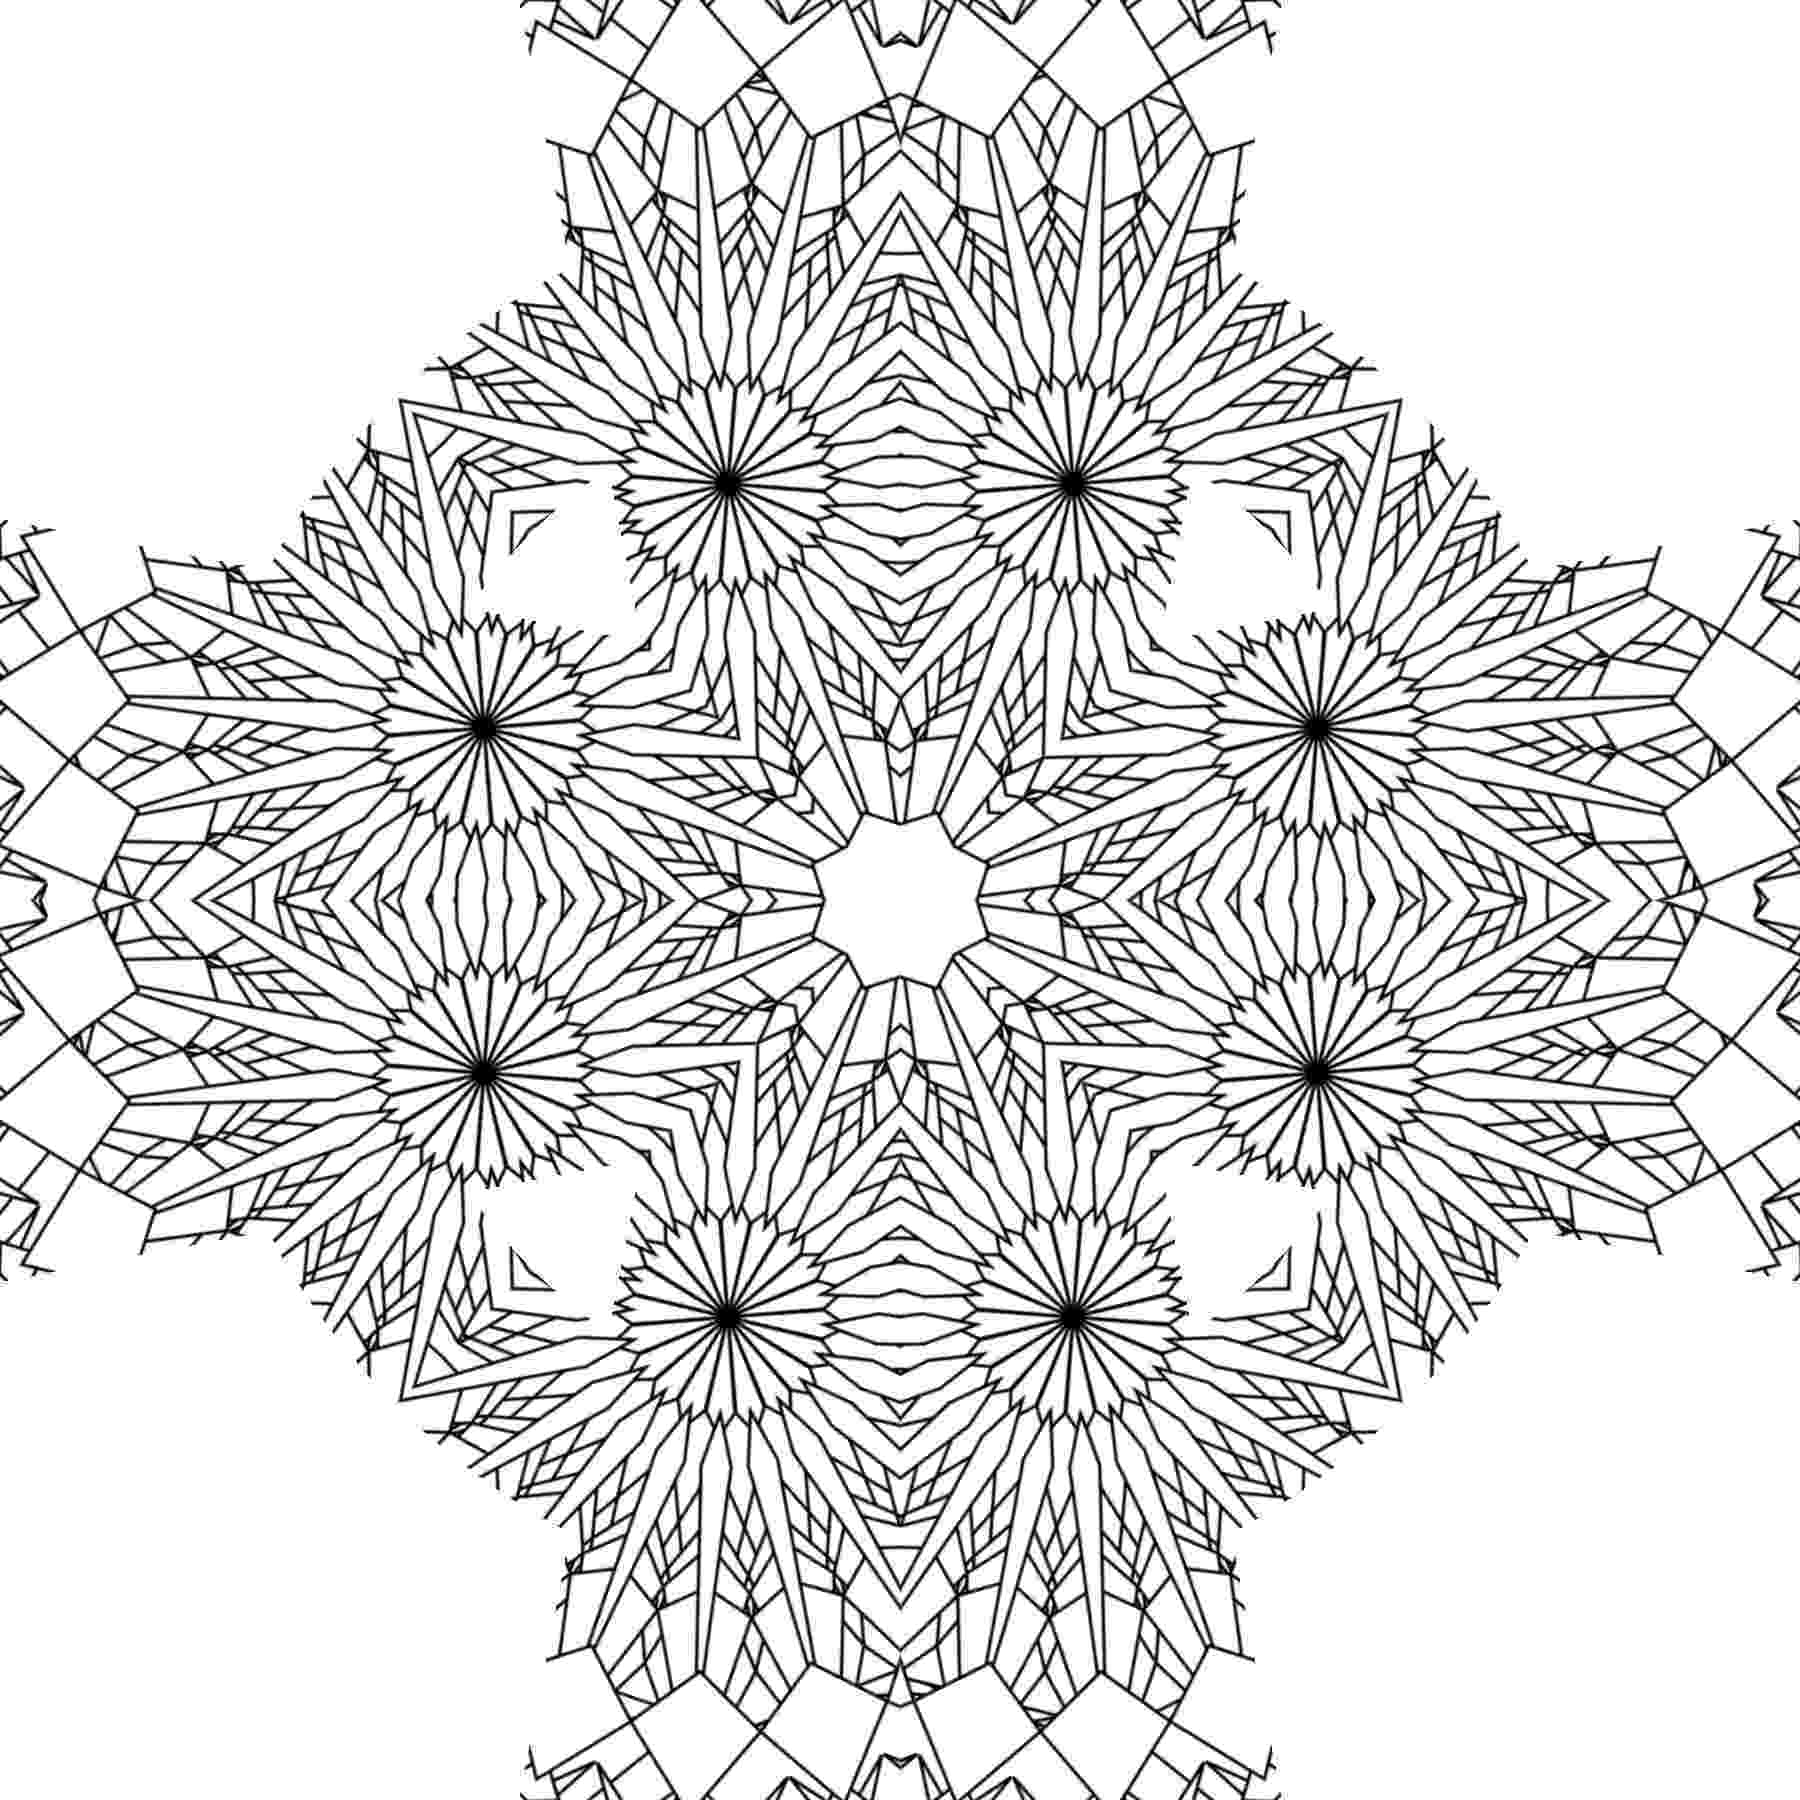 coloring patterns free printable abstract coloring pages for adults coloring patterns